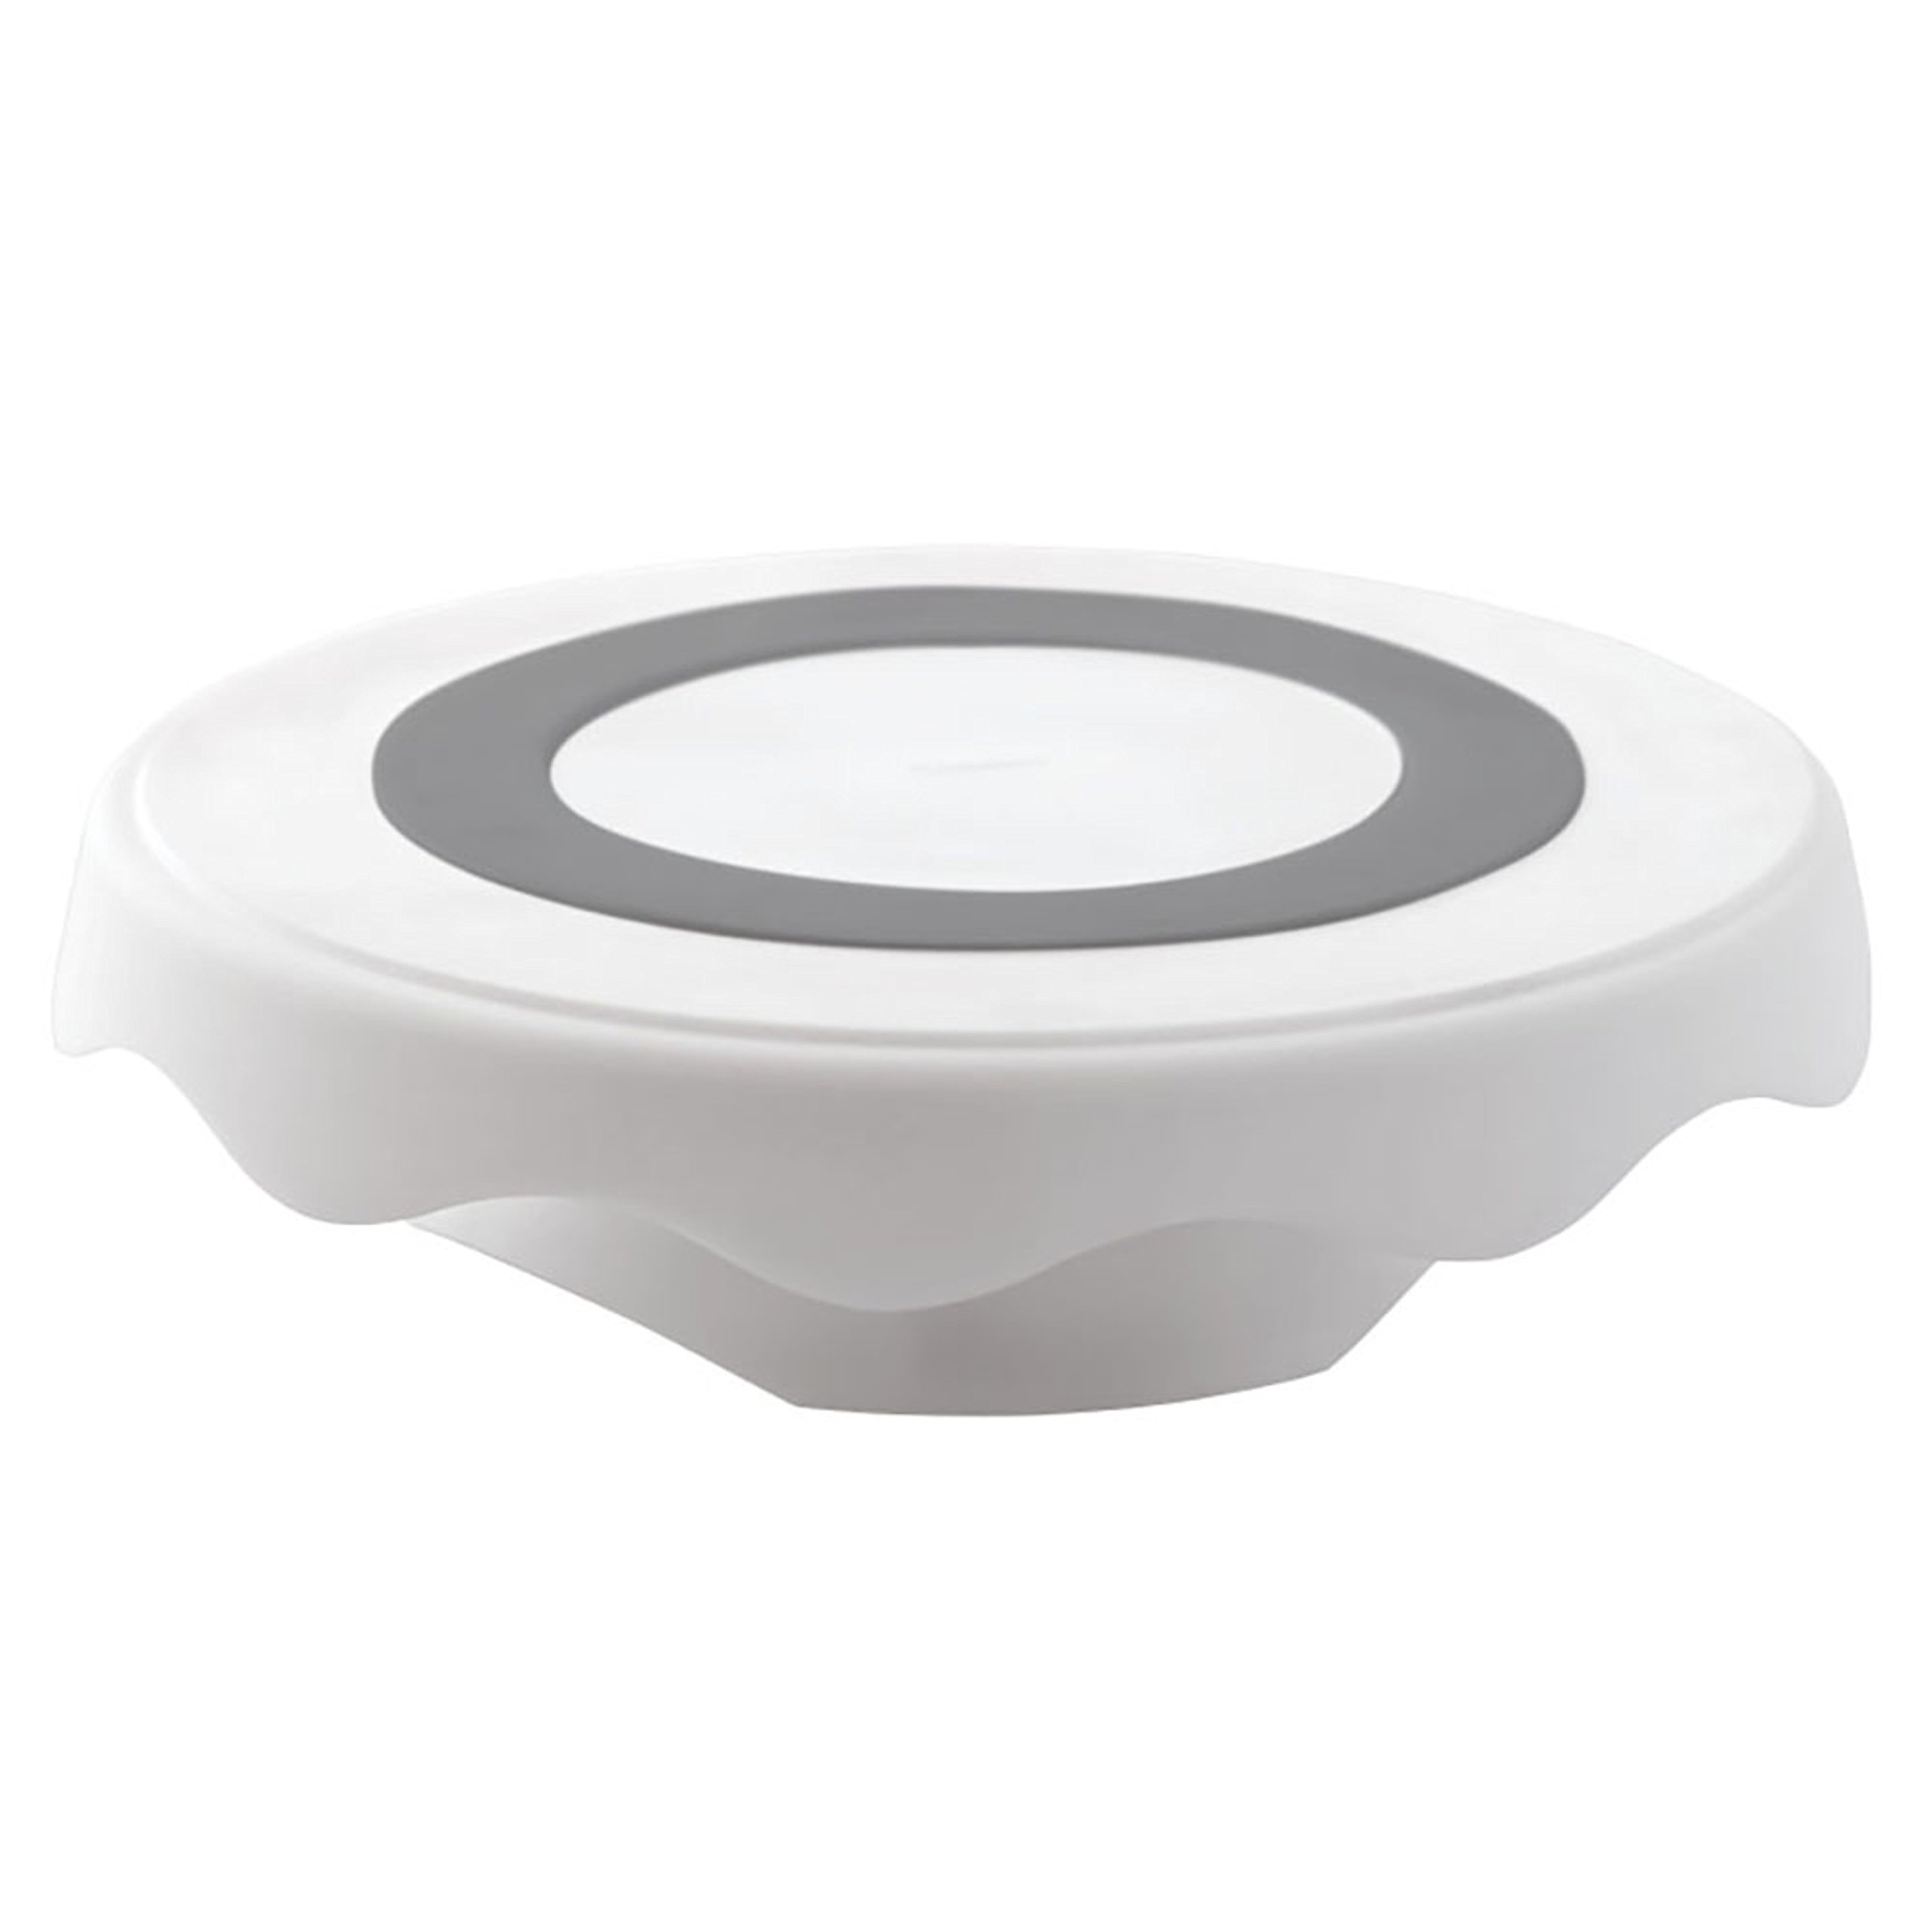 Wilton High Turntable Cake Decorating Stand